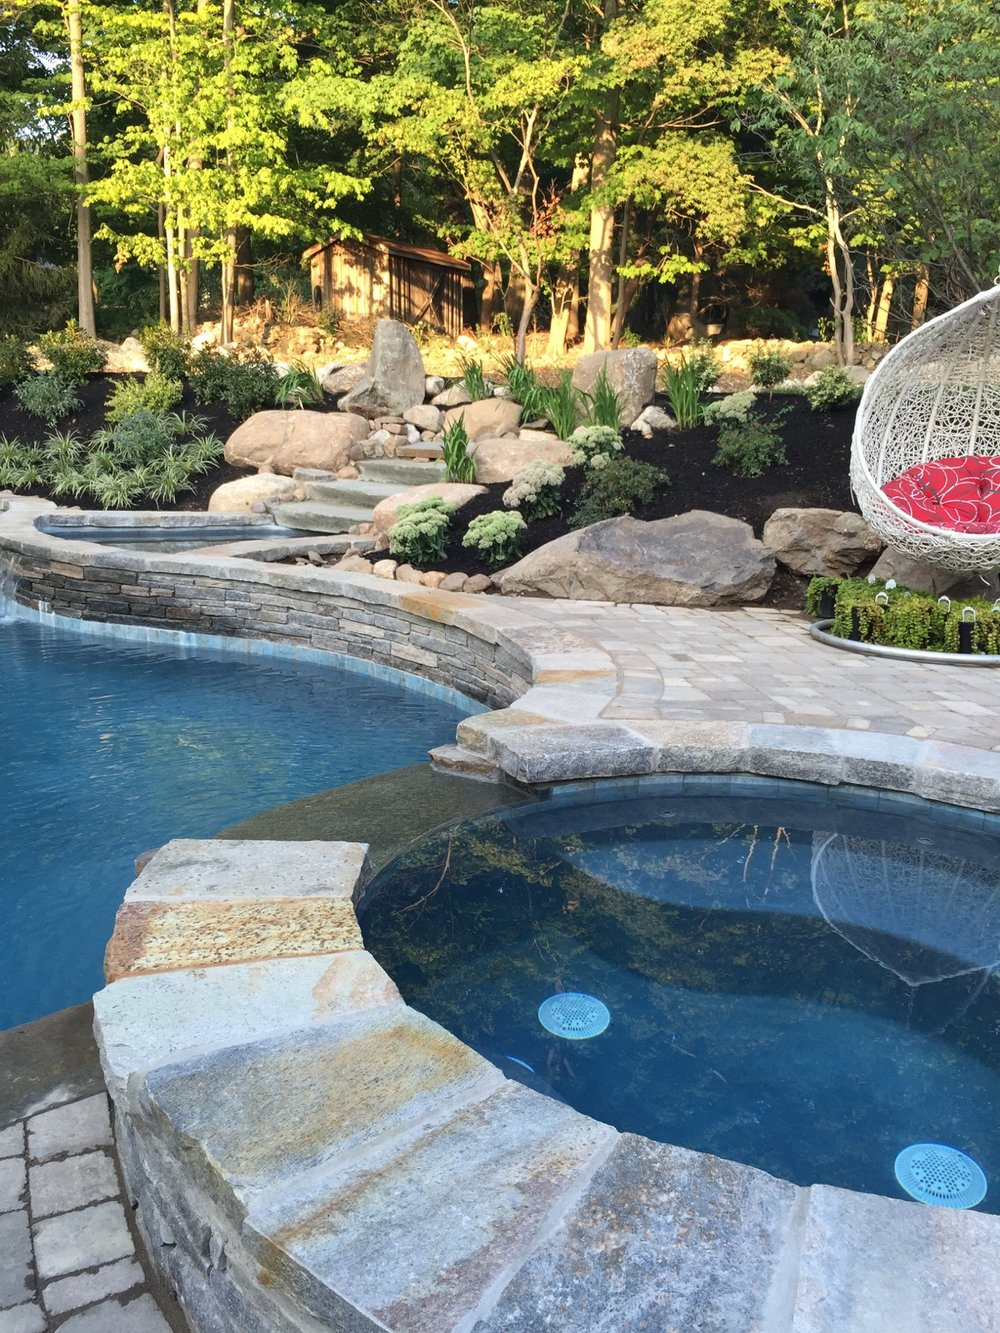 New Jersey custom lagoon with bar stools, spill over spa and natural rock waterfall.